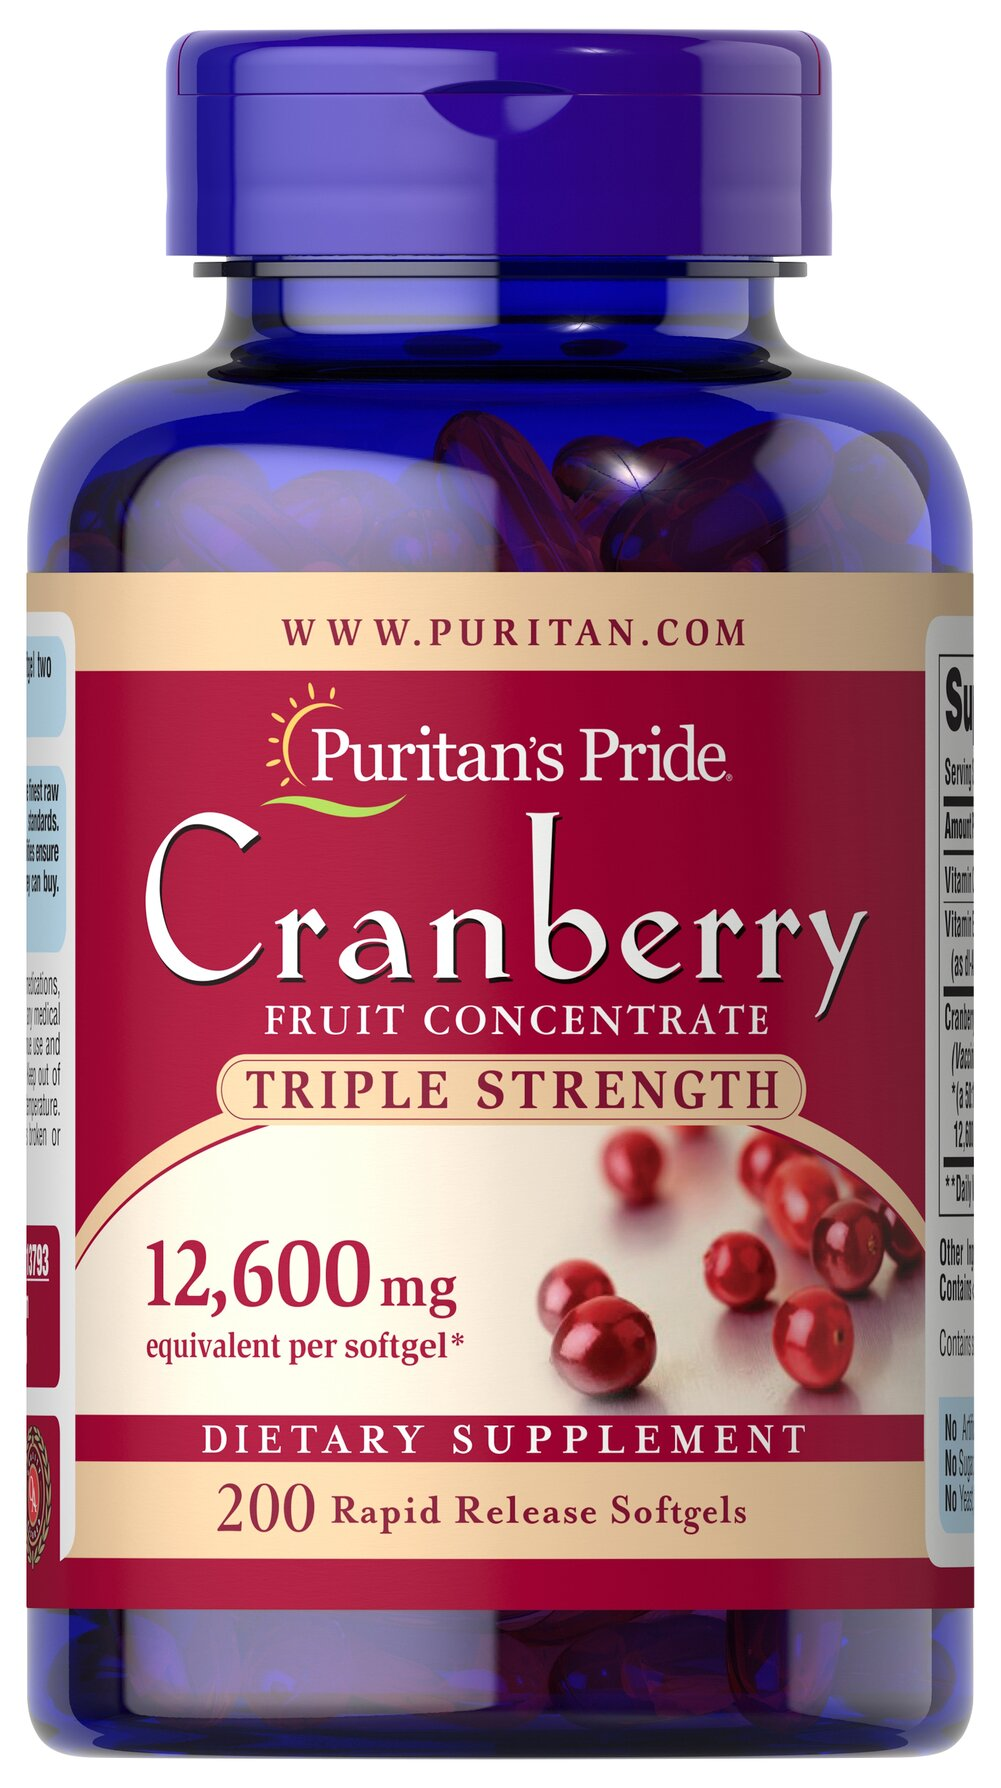 Triple Strength Cranberry Fruit Concentrate 12,600 mg <p>Supports Urinary and Immune System Health**</p><p>Triple Strength Cranberry Concentrate contains 12,600 mg of cranberry concentrate per serving.</p><p>Cranberries contain the nutritional benefits of proanthocyanidins.** This product also contains Vitamin C, an antioxidant that plays a role in supporting immune function, plus Vitamin E.**</p> 200 Softgels 12600 mg $39.99